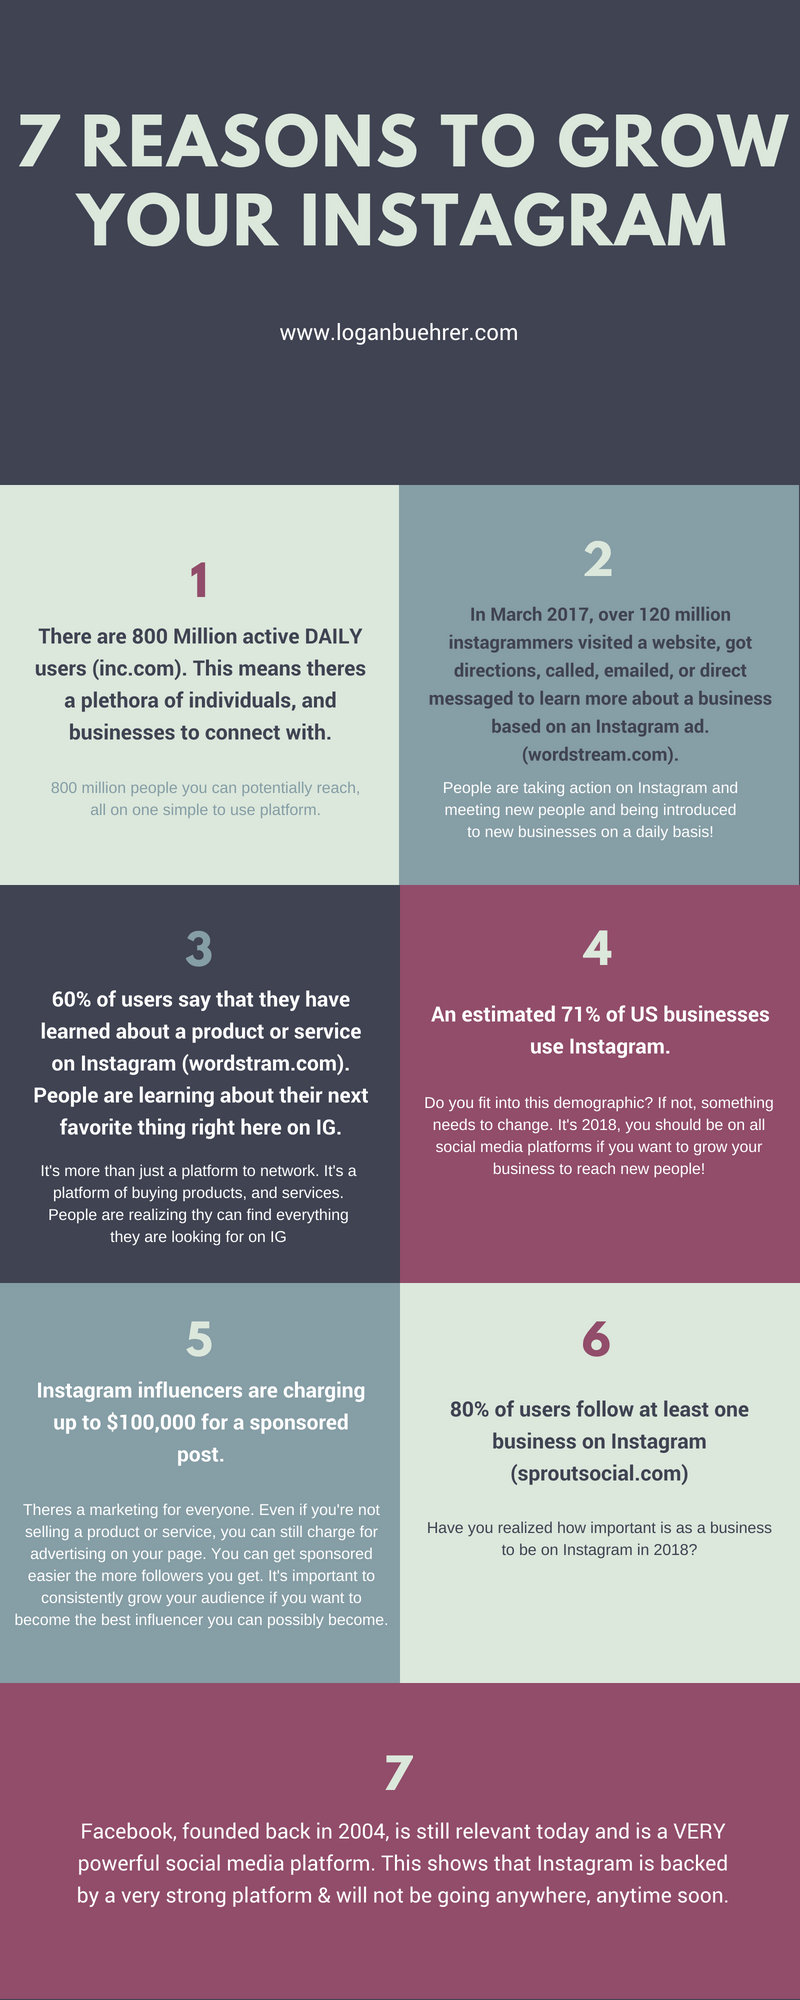 5 reasons to grow your instagram.png